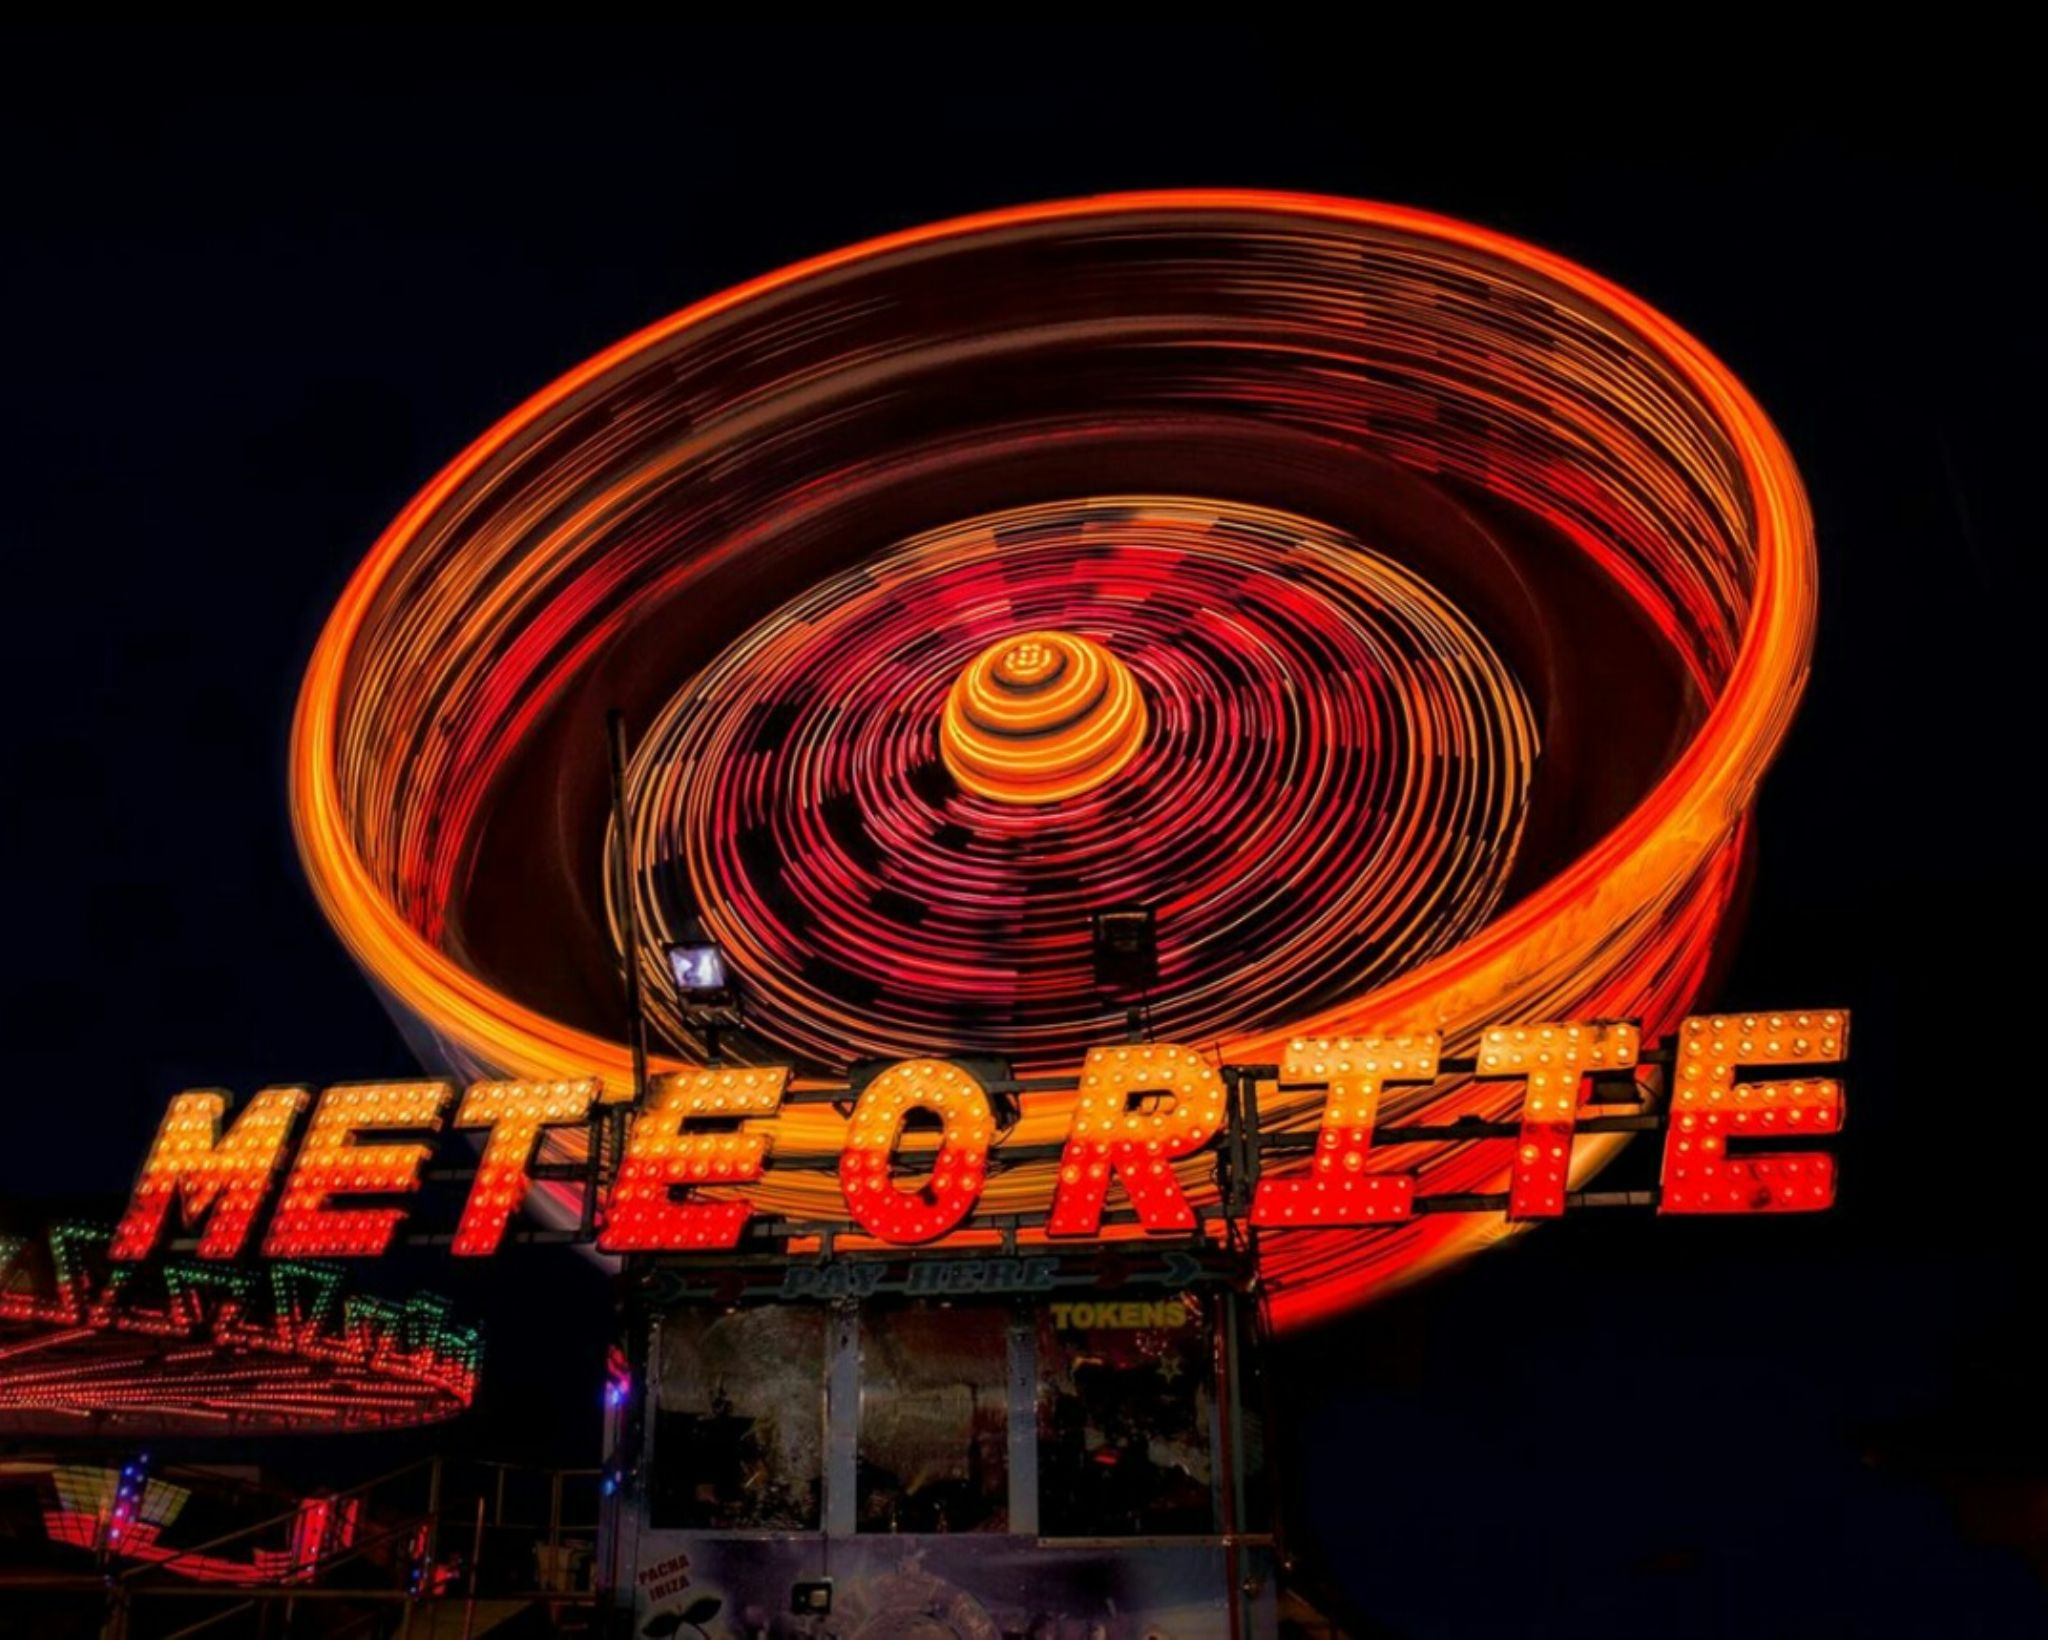 At the funfair  by BALRATH PHOTOGRAPHY